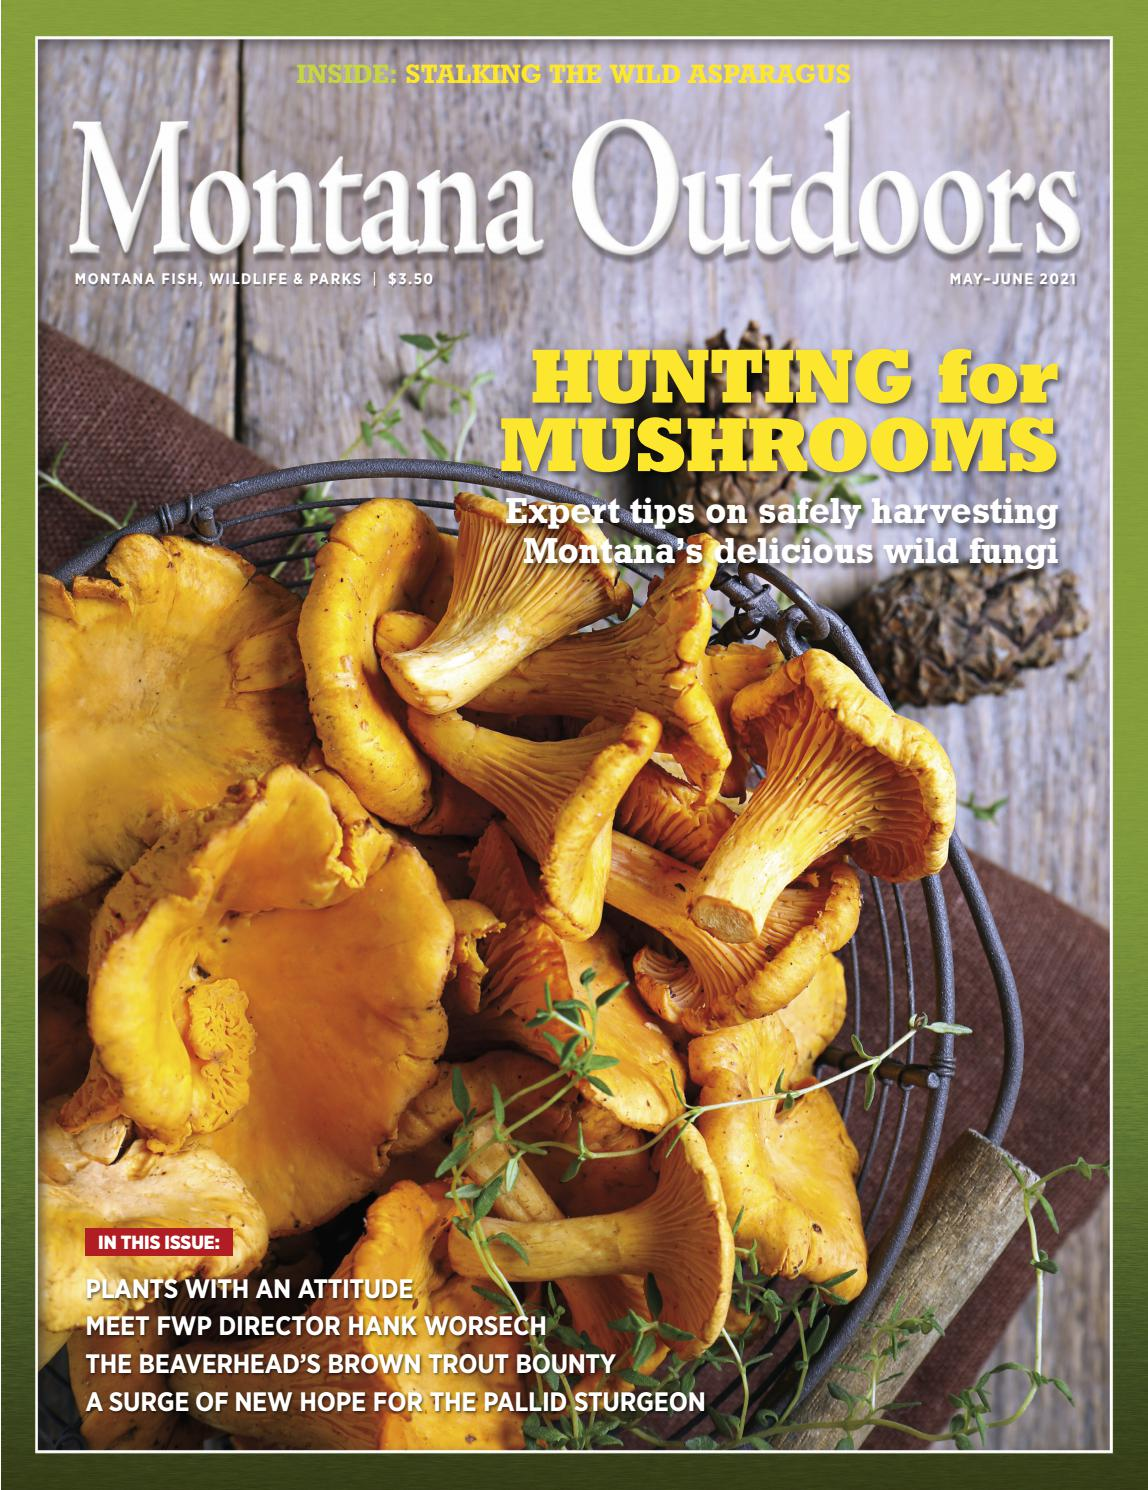 How Widesoread Is The Stomach Flu Over Christmas 2021 In Montana Montana Outdoors Magazine May June 2021 By Montana Outdoors Issuu